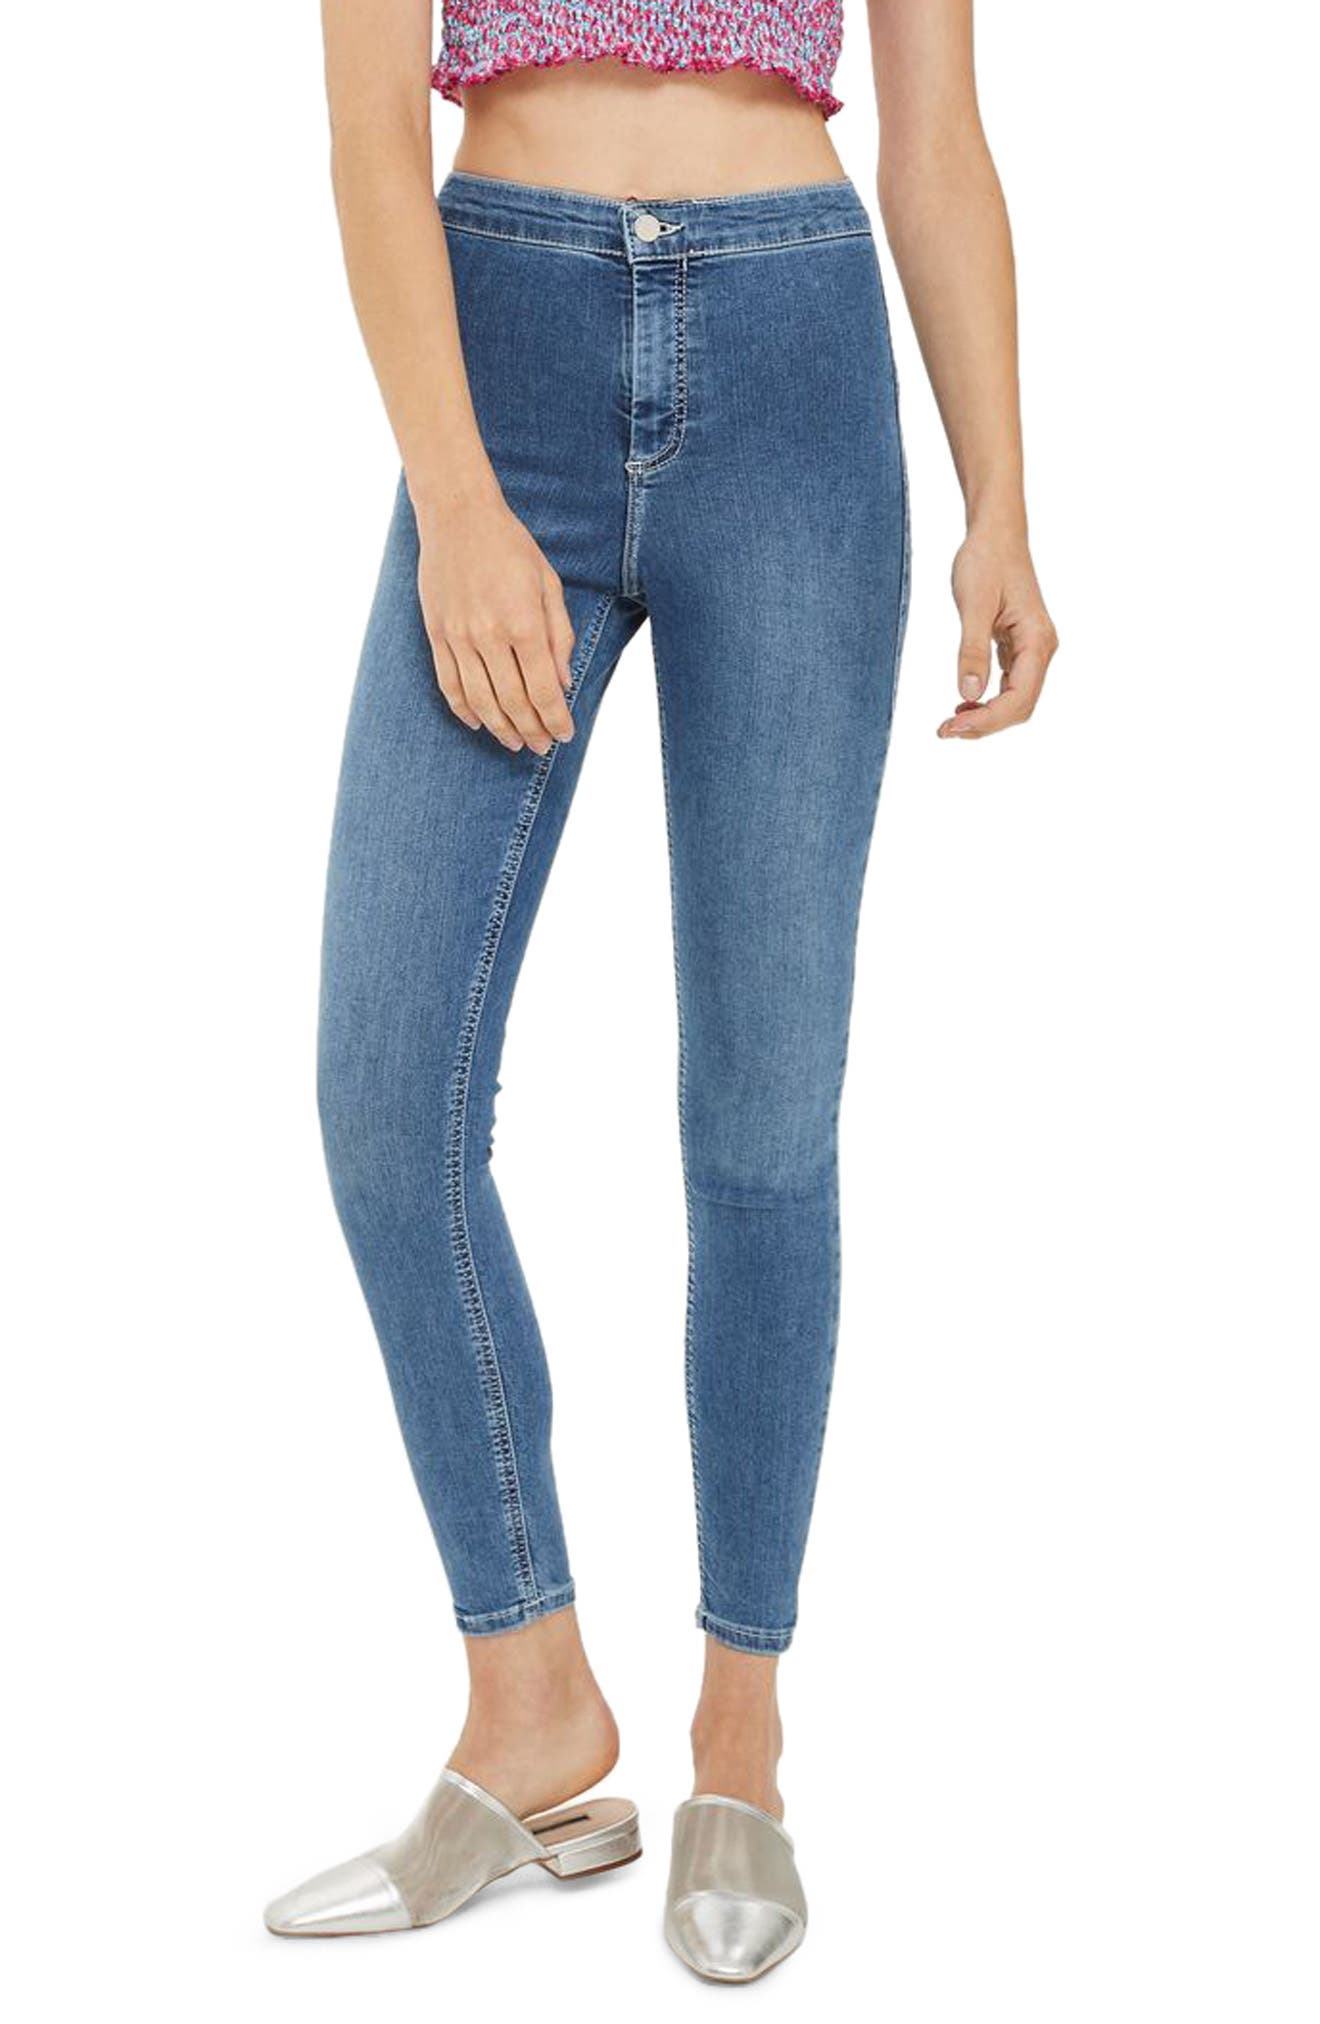 Topshop Joni Contrast Stitch High Rise Skinny Jeans